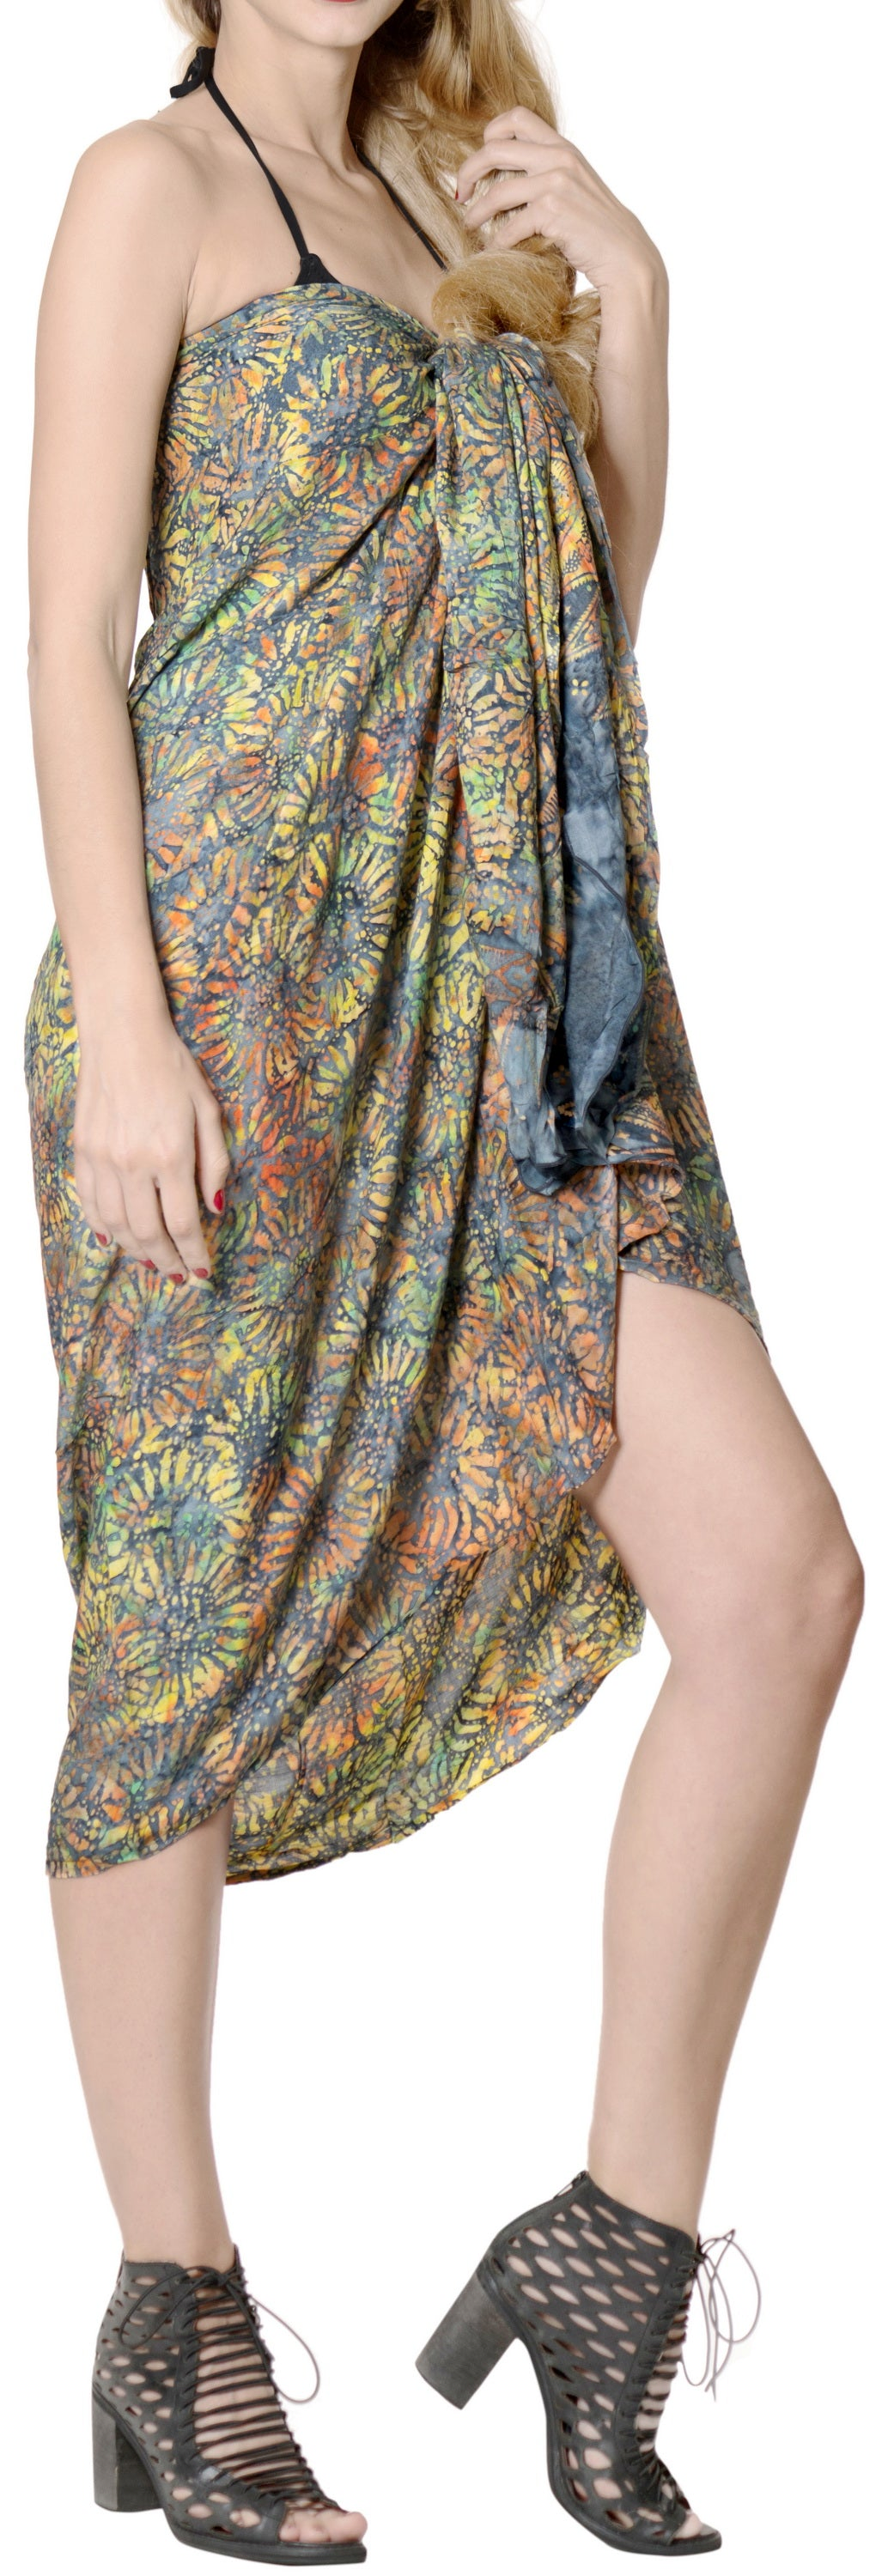 LA LEELA Women Wrap Bathing Suit Sarong Printed 78